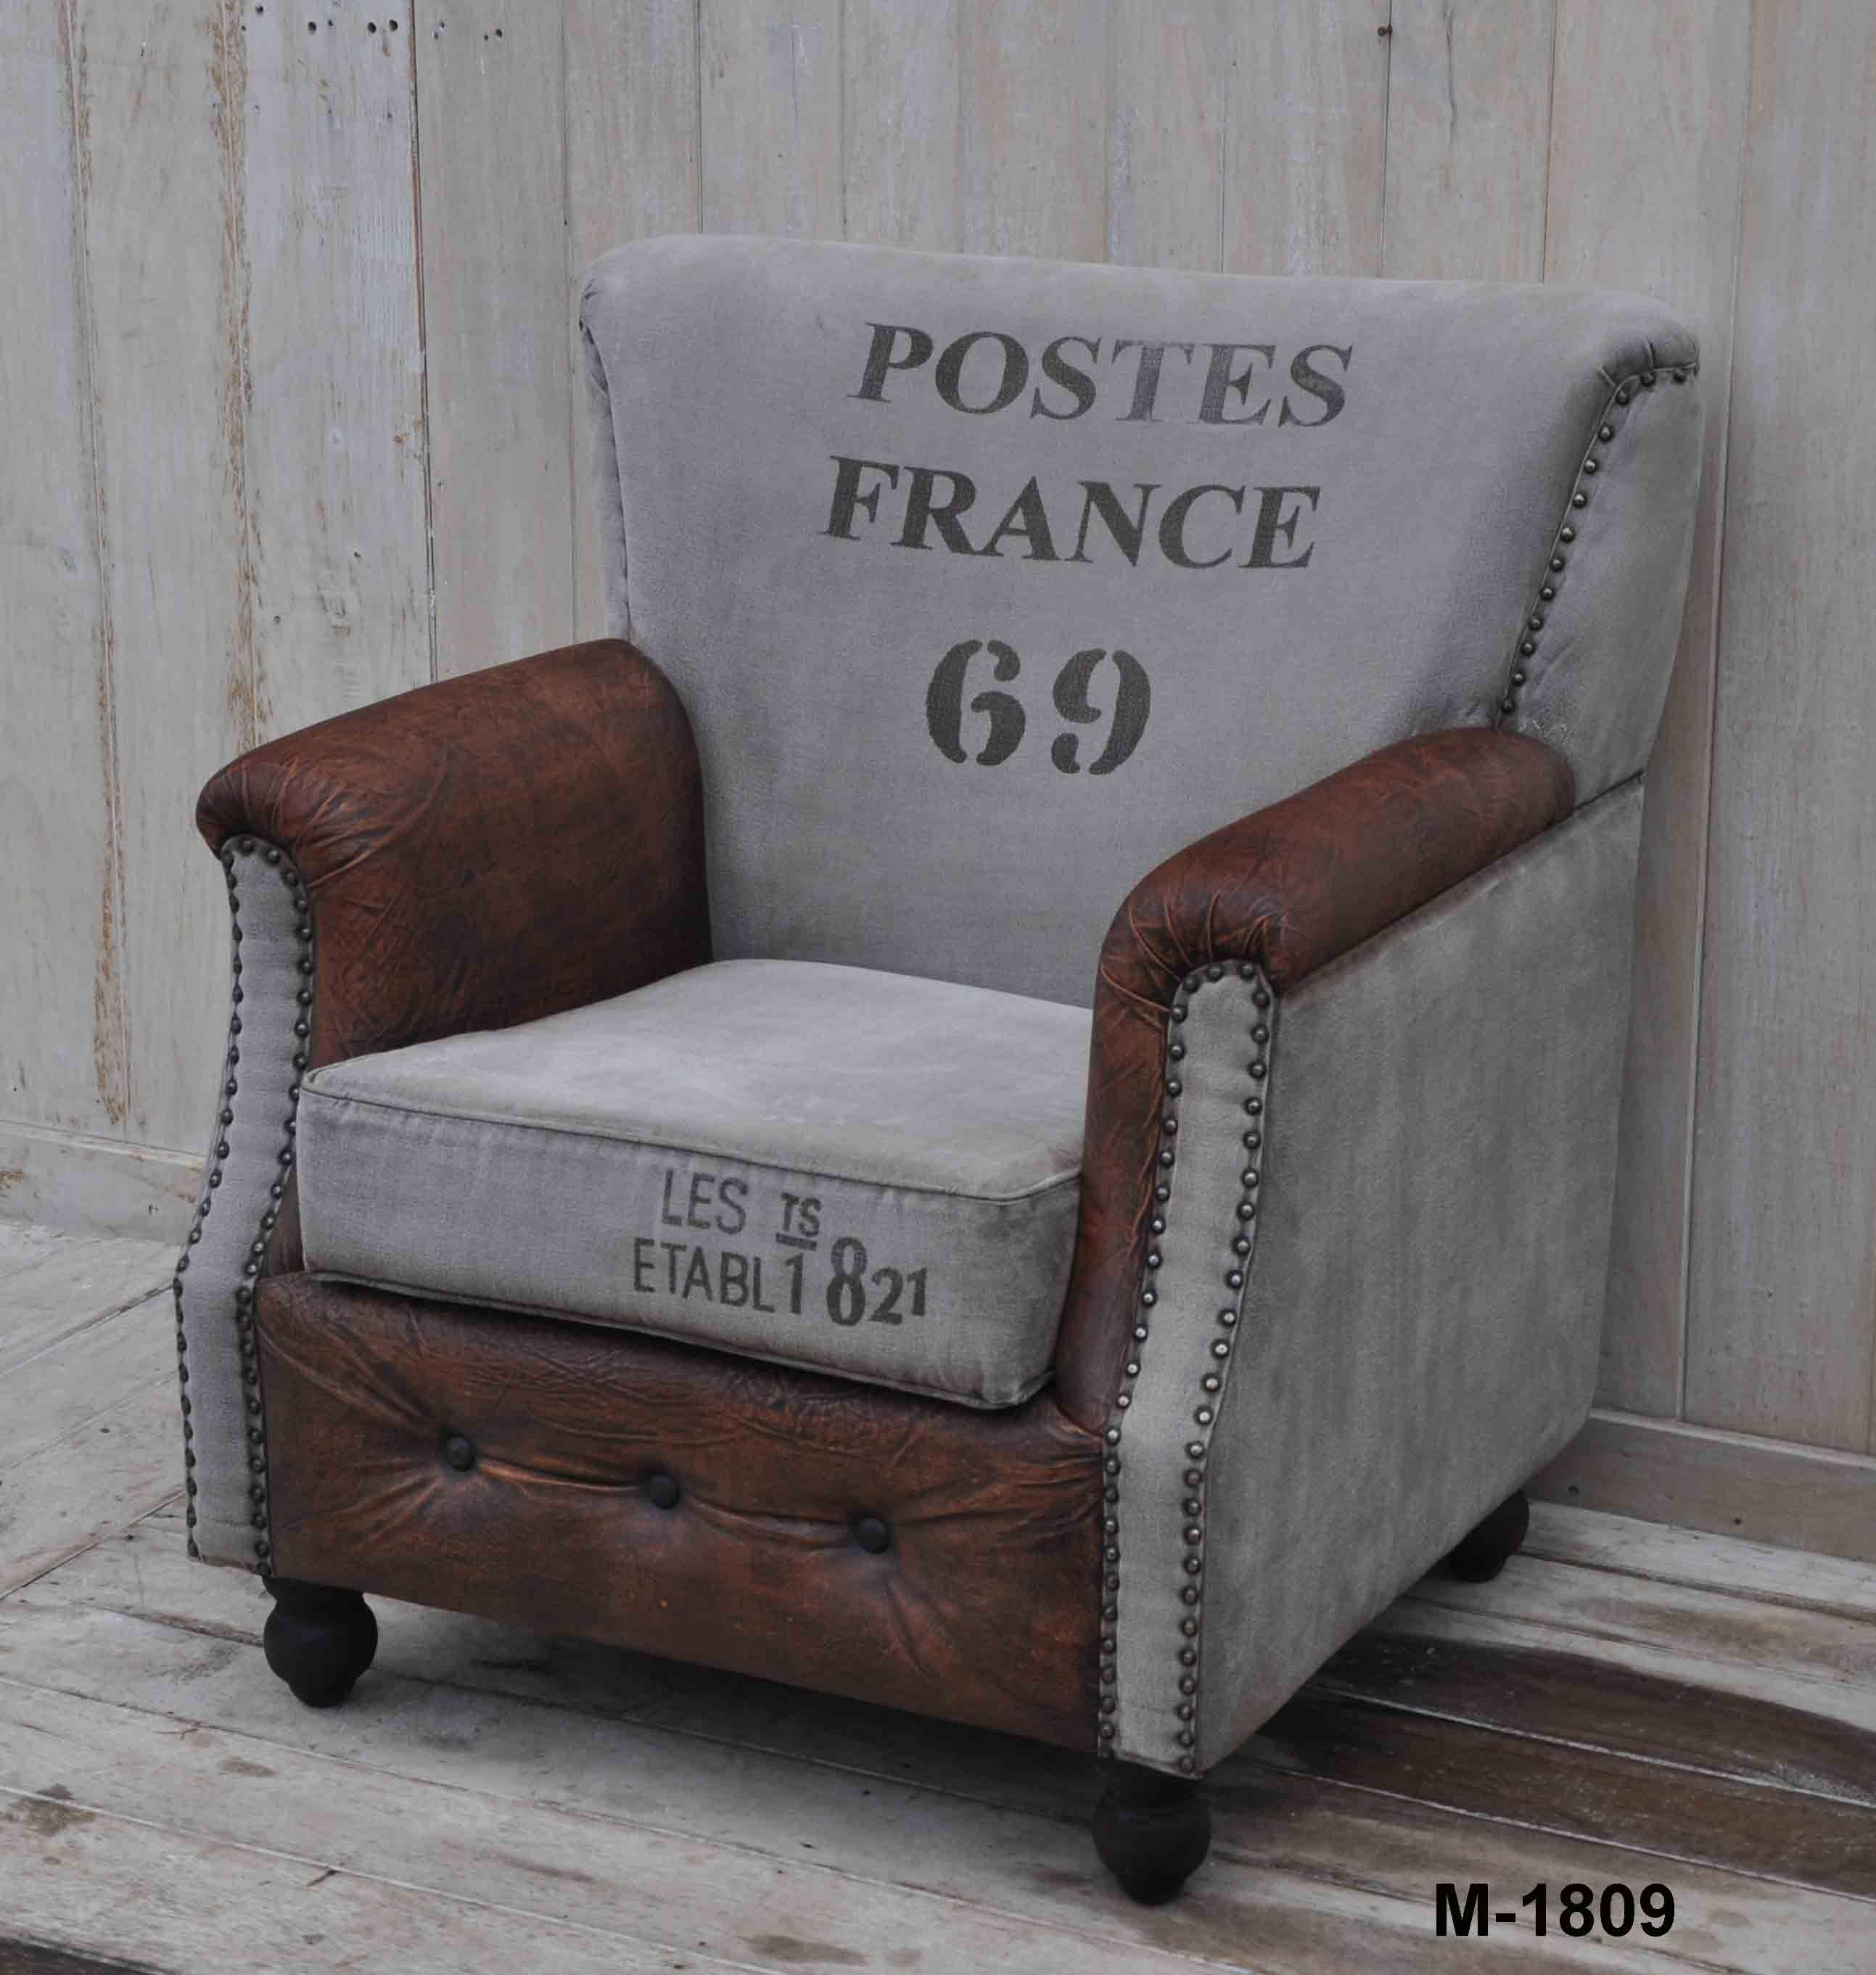 This Beautiful French Inspired Postes Arm Chair, Is Made From Hardwood  Timber, Plush Leather And Recycled Canvas.